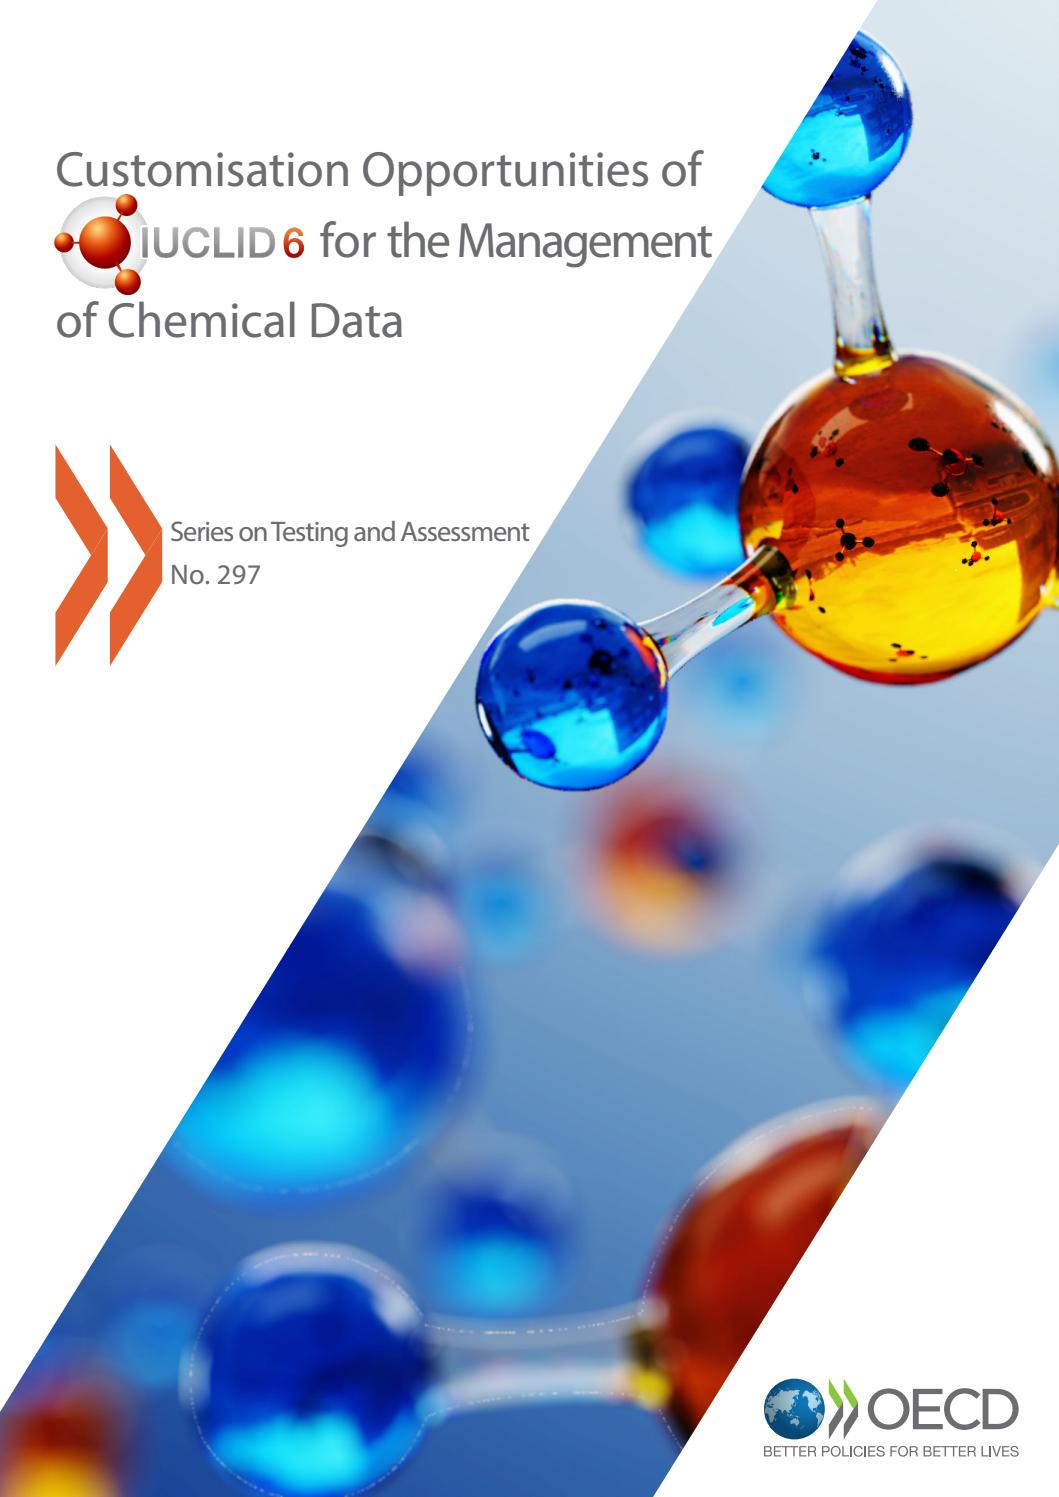 Customisation Opportunities of IUCLID 6 for the Management